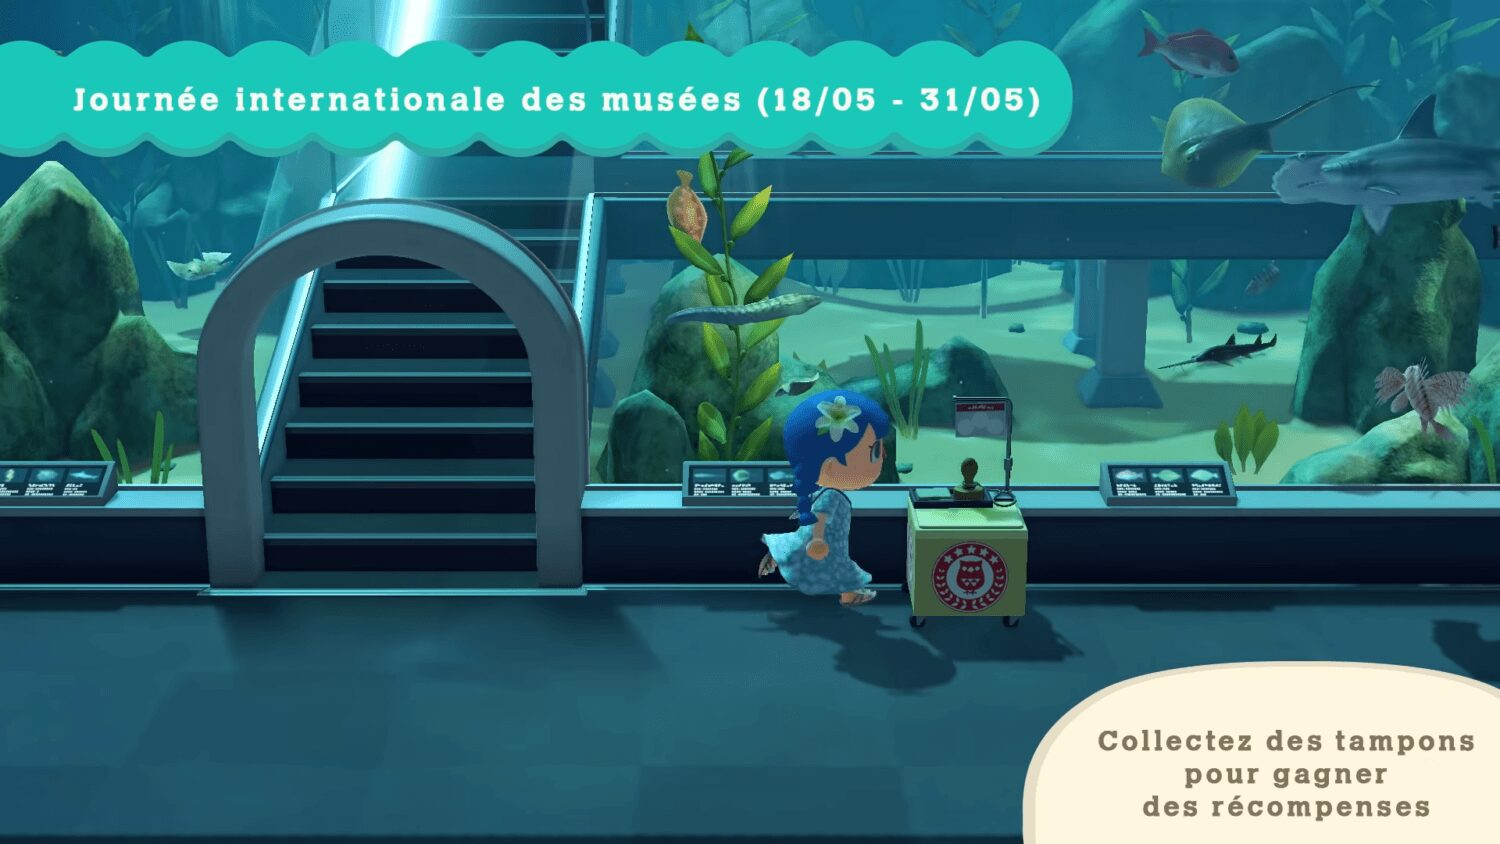 journee internationale des musee animal crossing new horizons